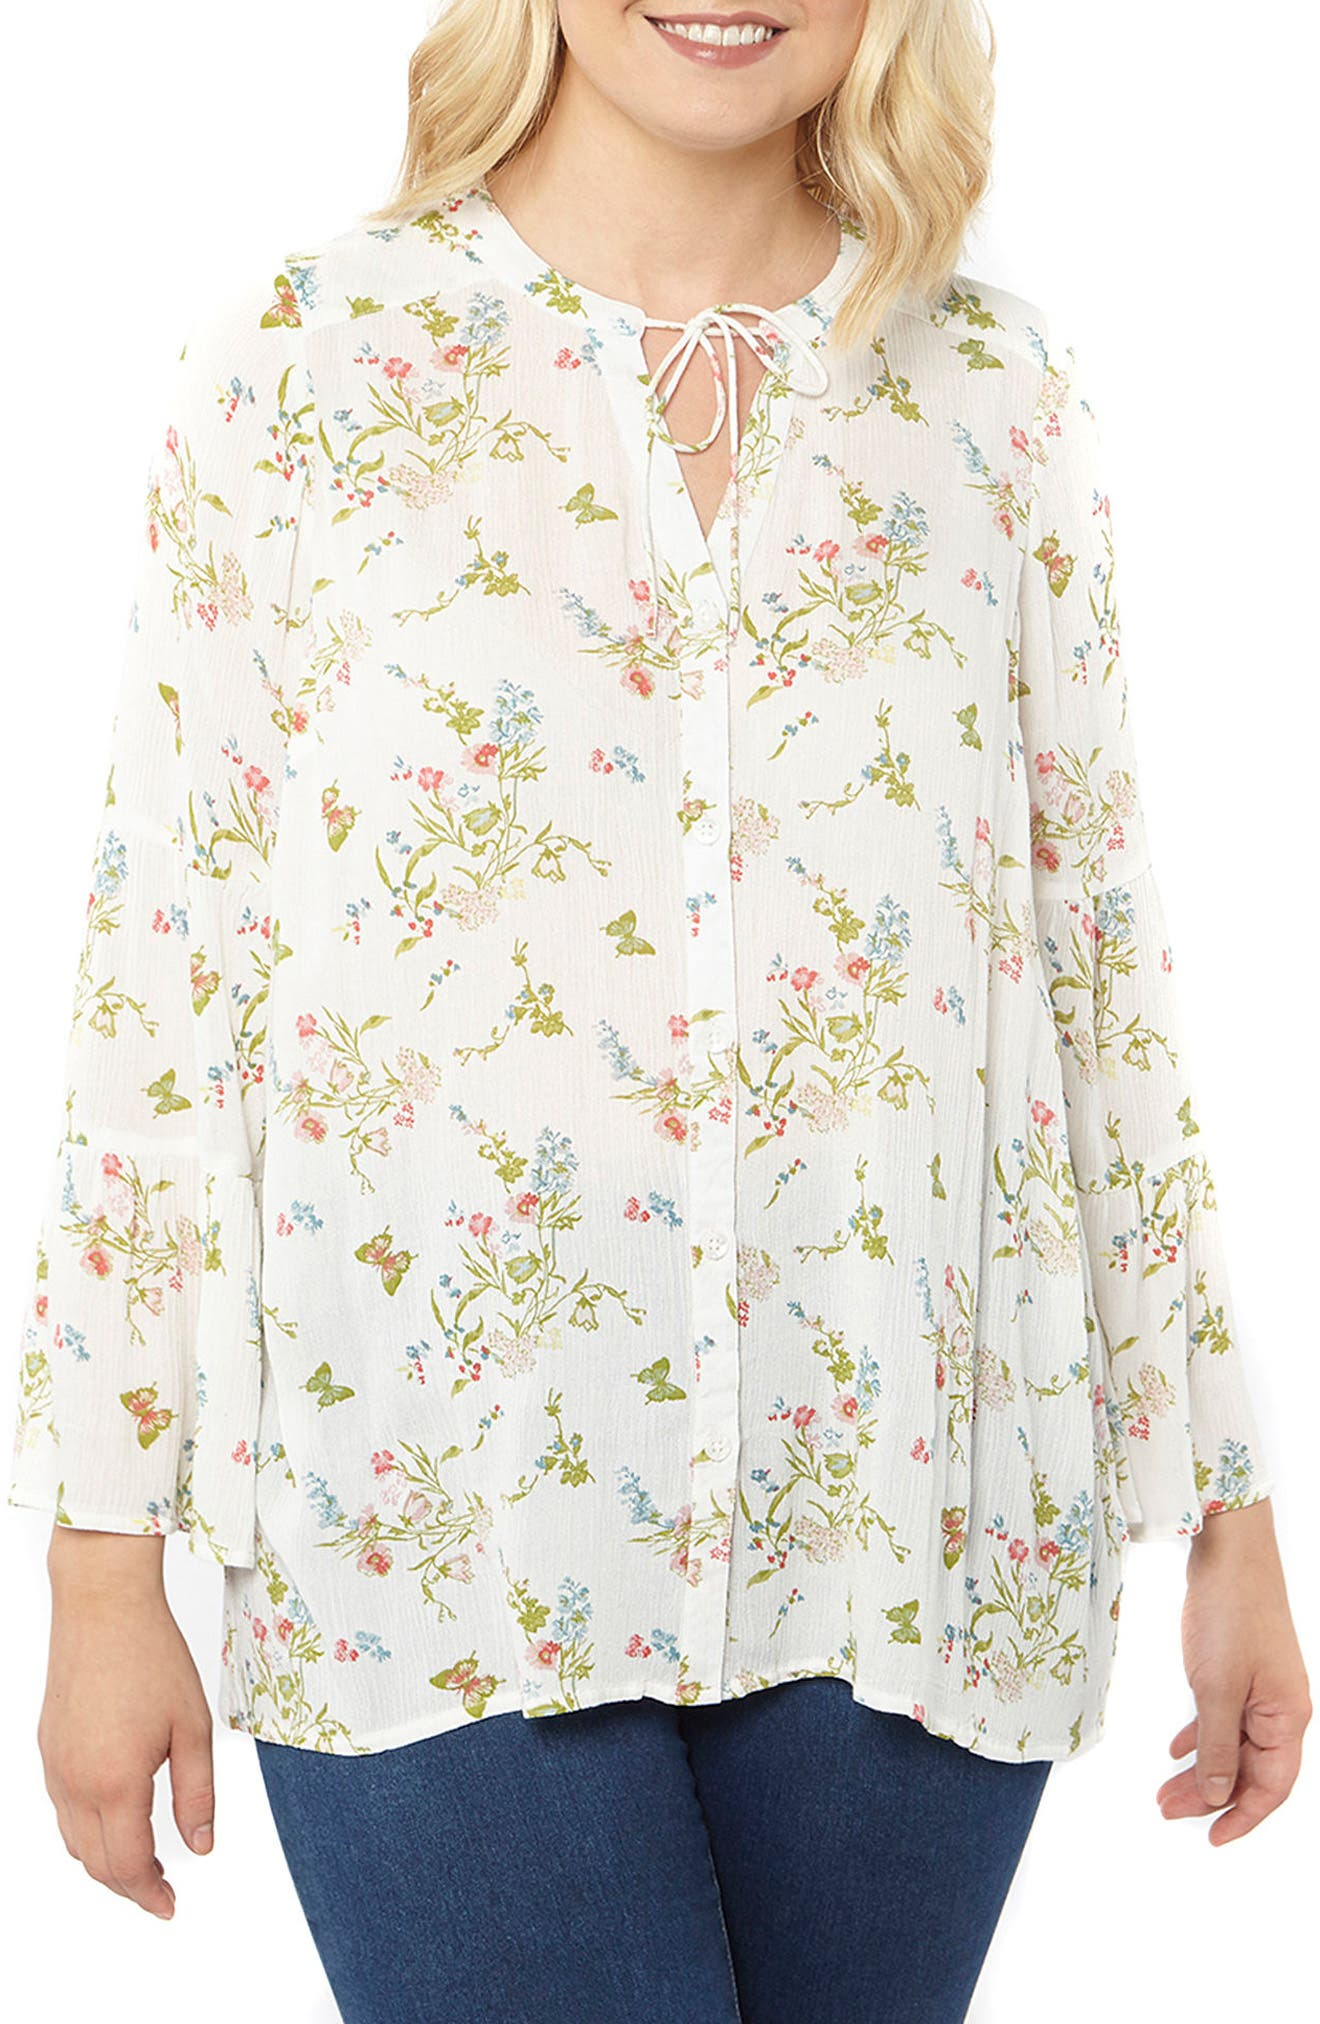 Main Image - Evans Bell Sleeve Floral Blouse (Plus Size)